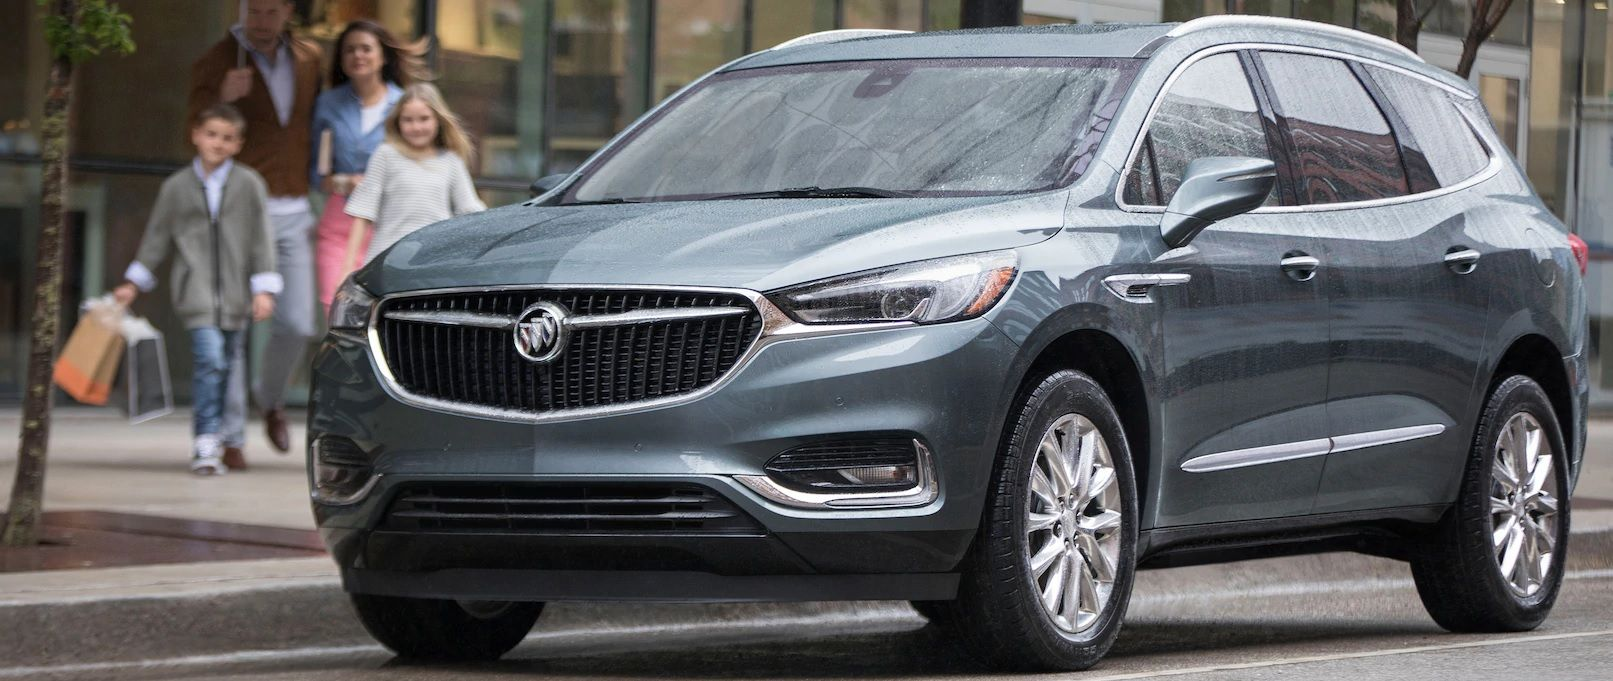 2018 Buick Enclave for Sale near Worthington, MN